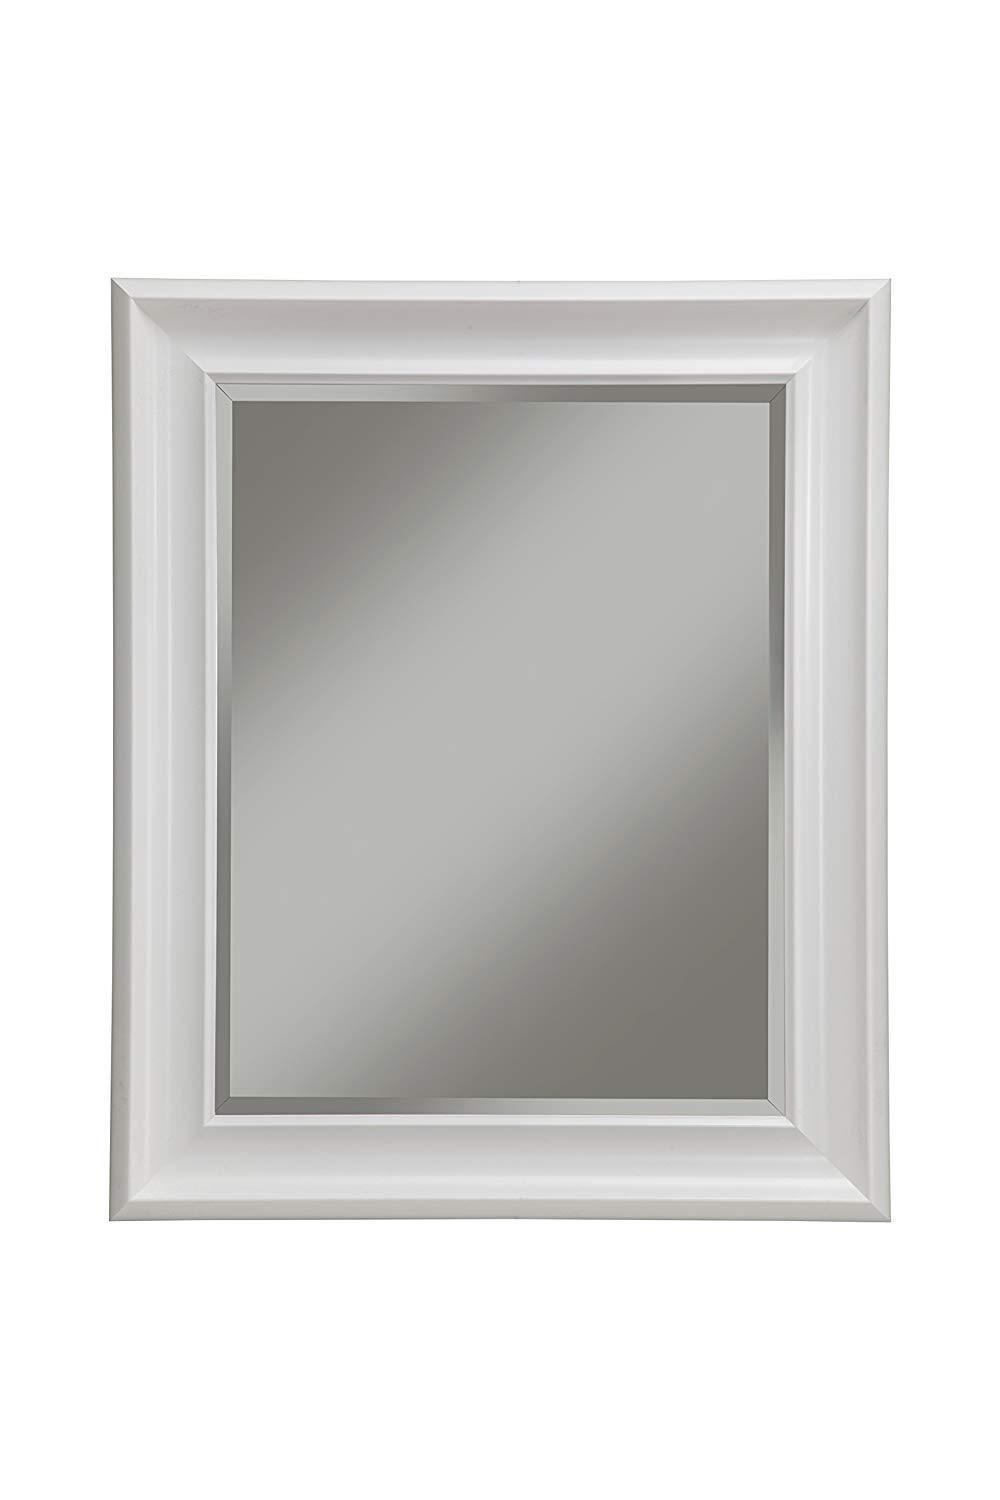 Polystyrene Framed Wall Mirror With Beveled Glass, White Within Farmhouse Woodgrain And Leaf Accent Wall Mirrors (View 19 of 20)